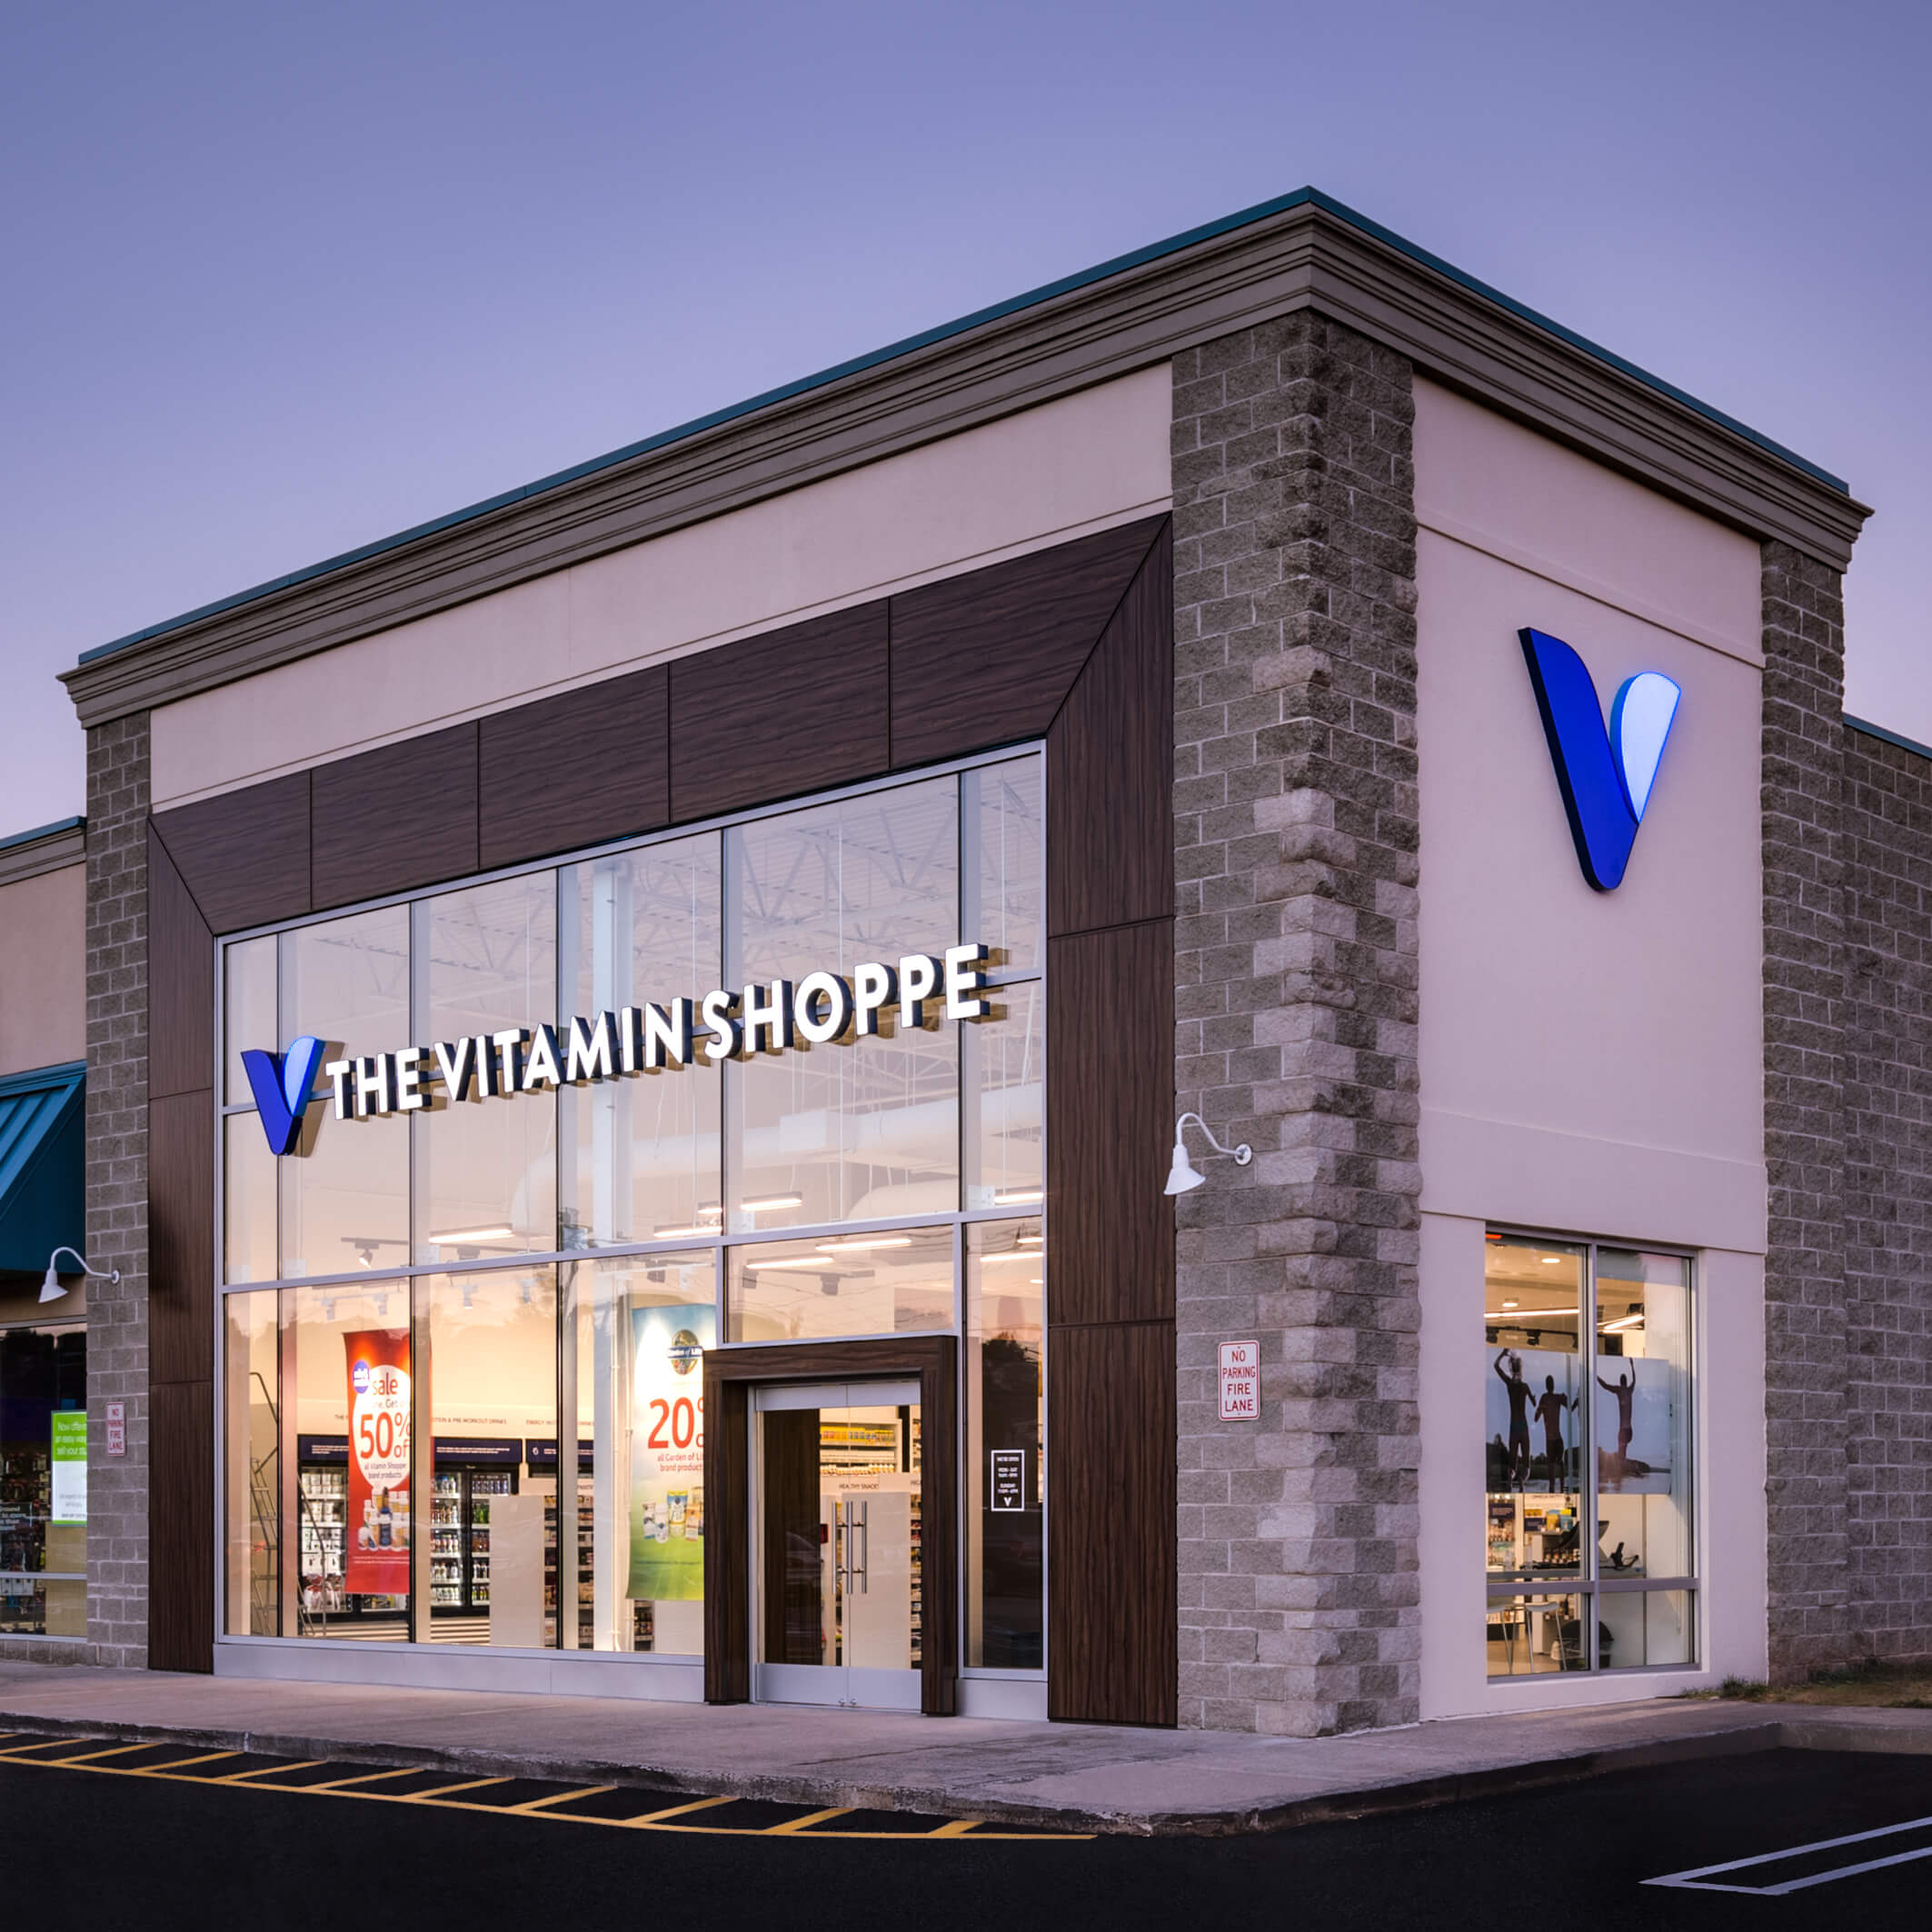 The Vitamin Shoppe ® exists to bring your best self to life. From inspiring experiences to nourishing, innovative solutions—we help you thrive every day.